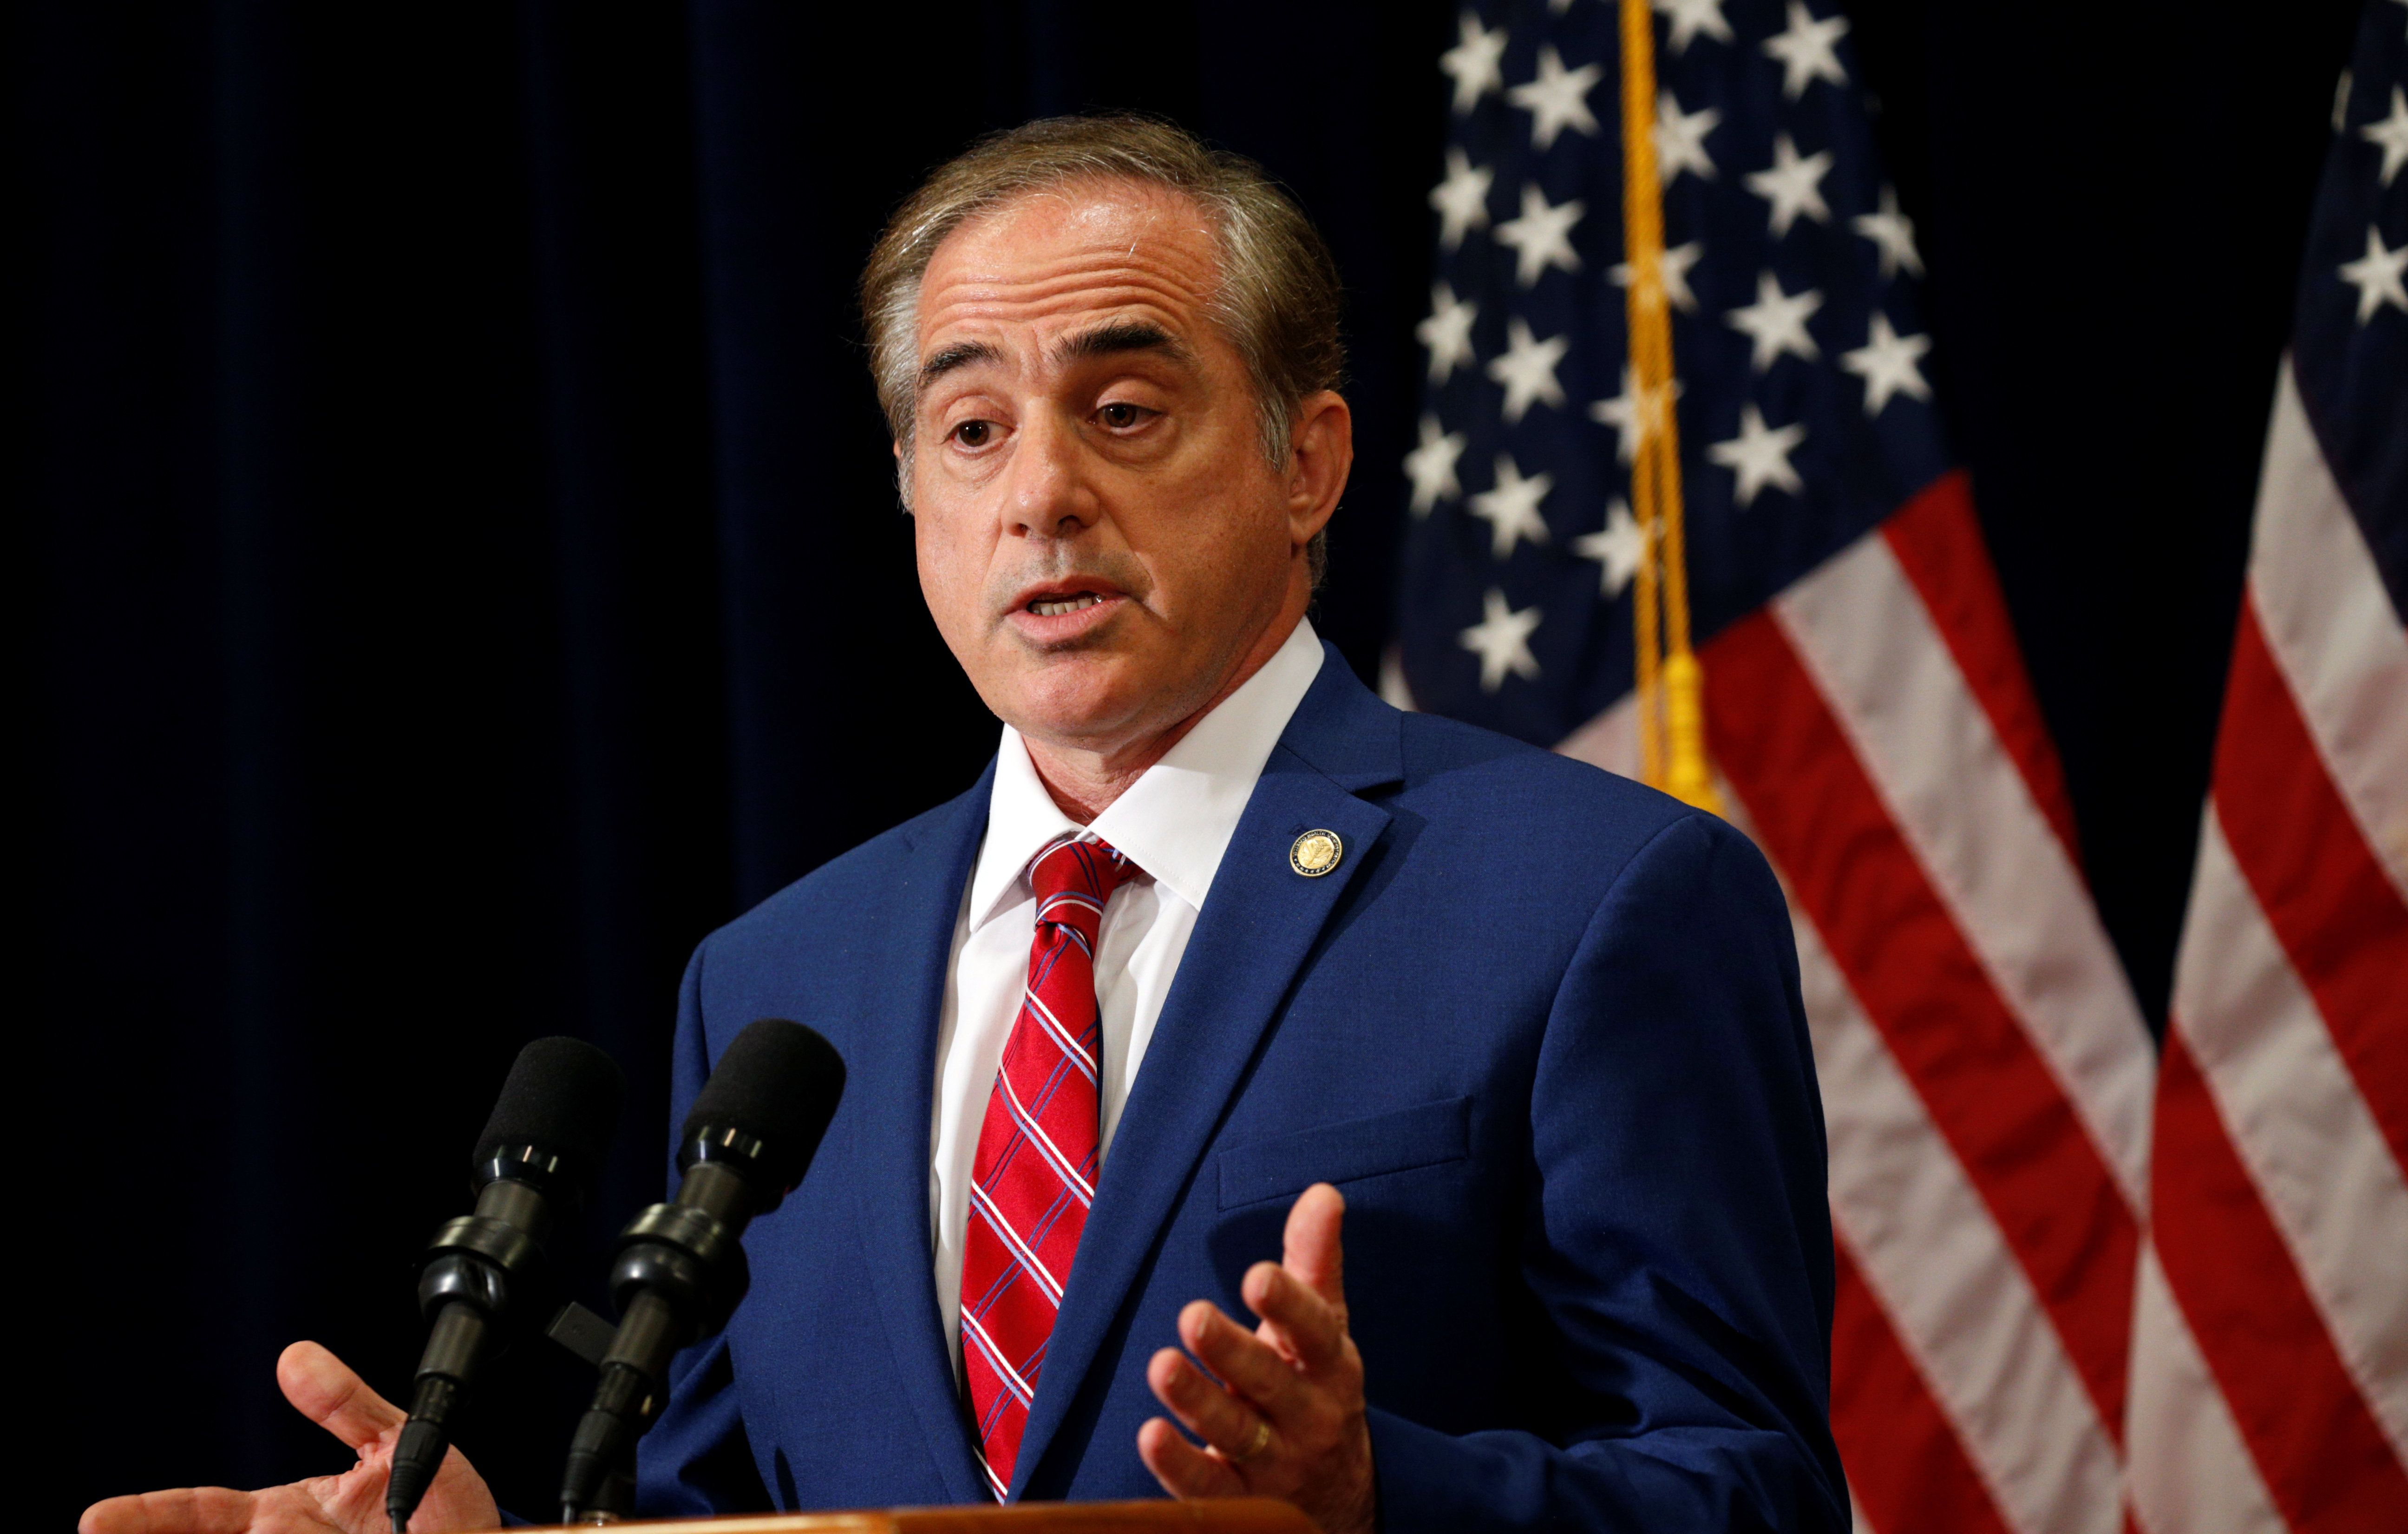 David Shulkin,seen here speaking to reporters in August 2017, was ousted by President Donald Trump on Wednesday.